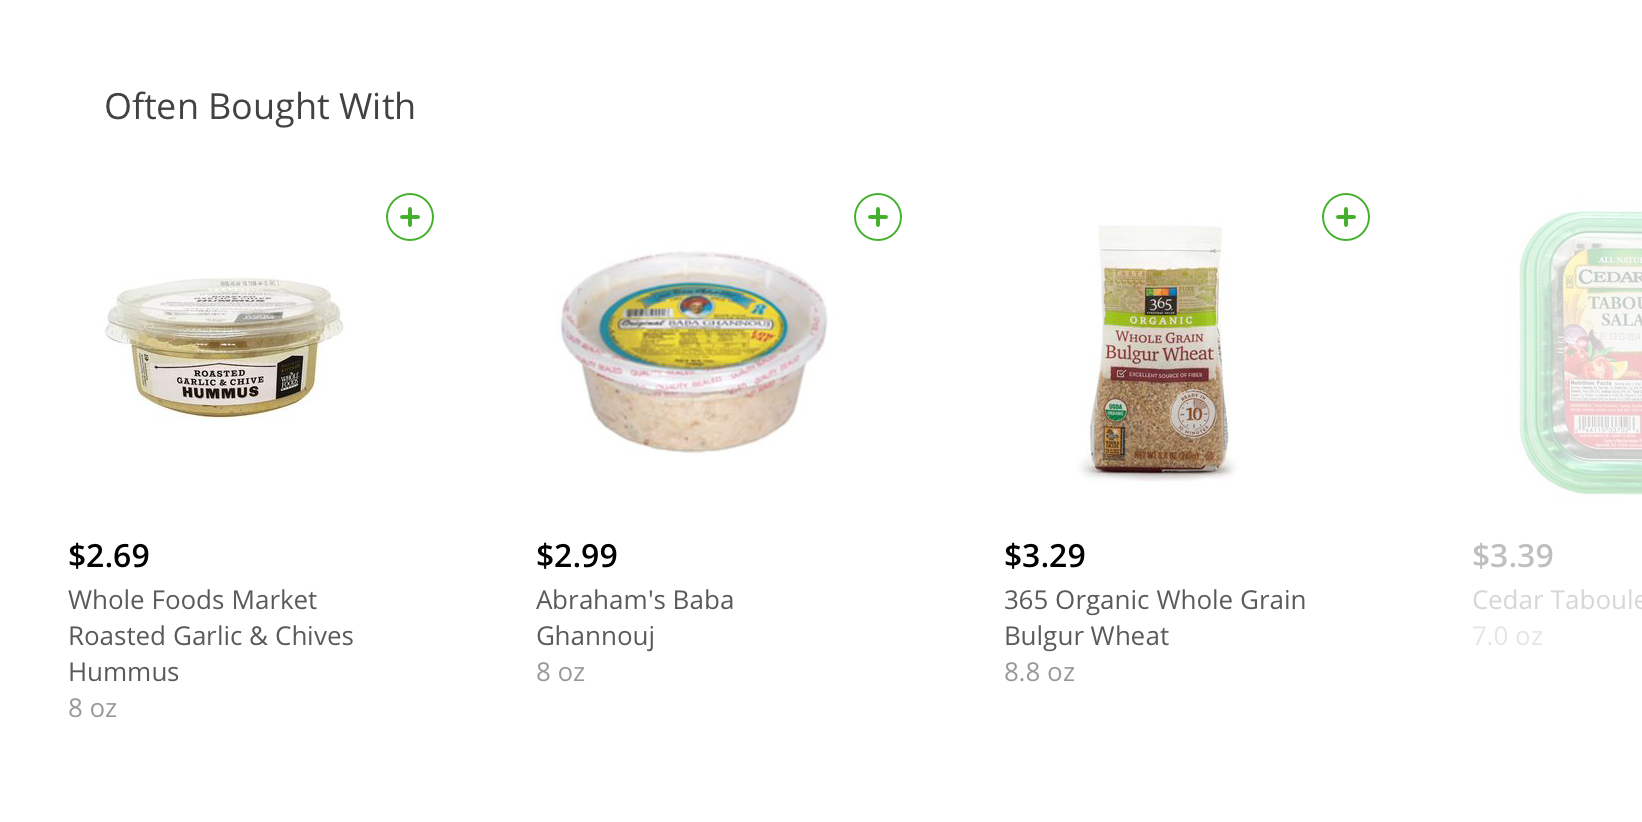 Pointwise Mutual Information for Instacart Product Recommendations